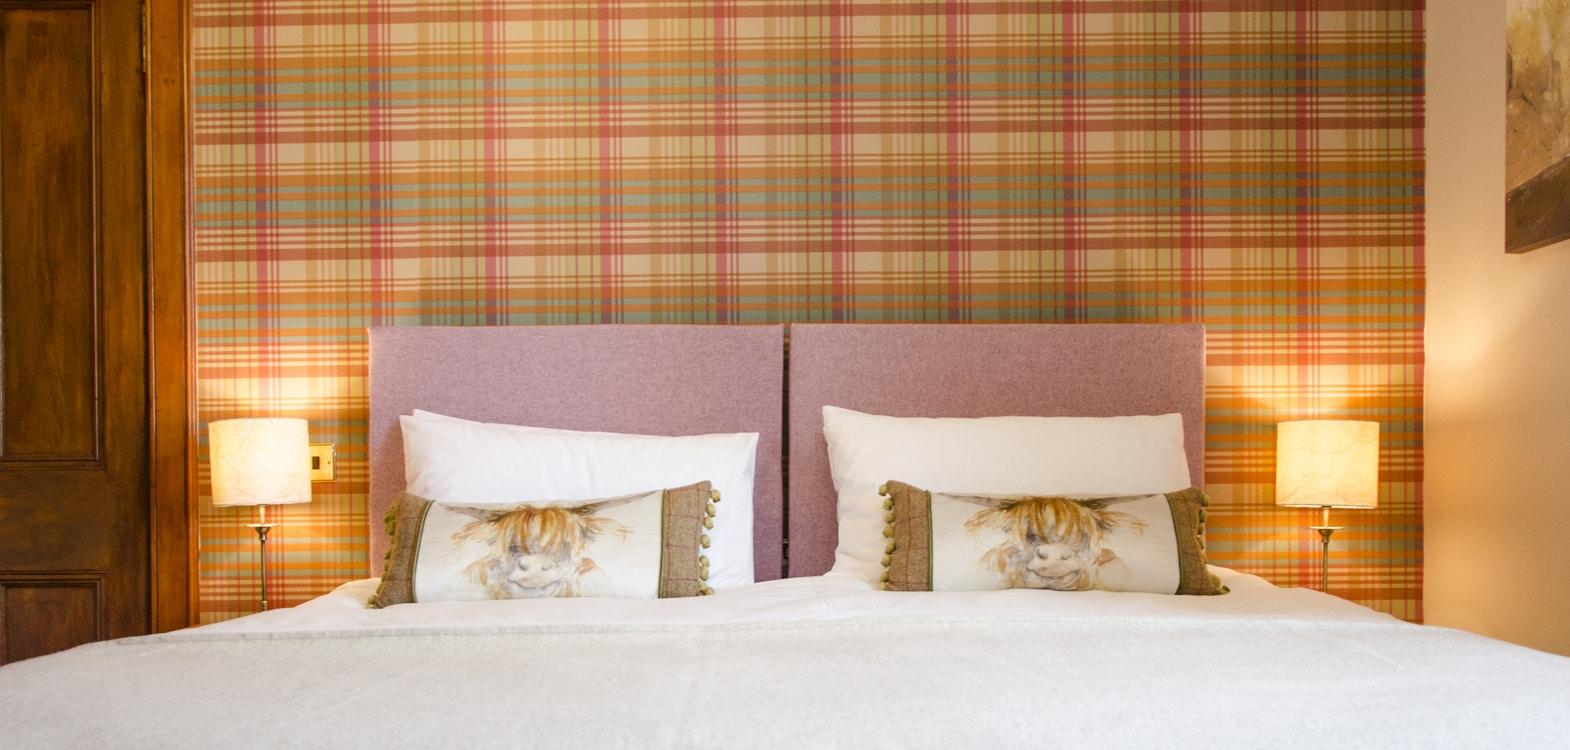 Tartan wallpaper with a zip link bed with pale pink headboards and Highland cow picture cushions at Strathallan Guest House